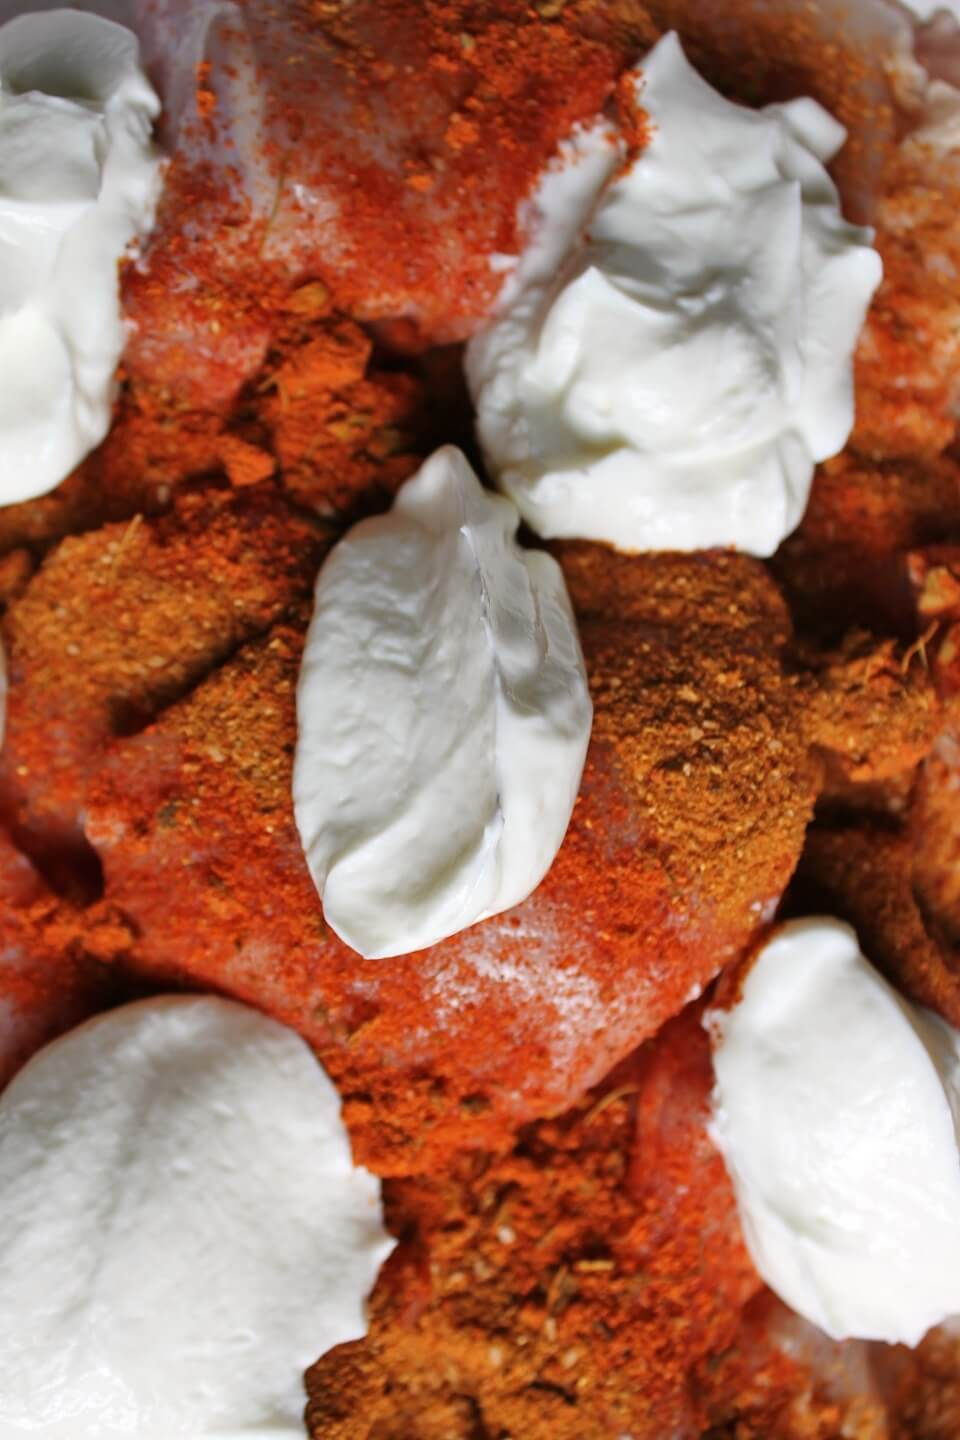 Raw chicken covered in bright orange spices and dotted with white yogurt.